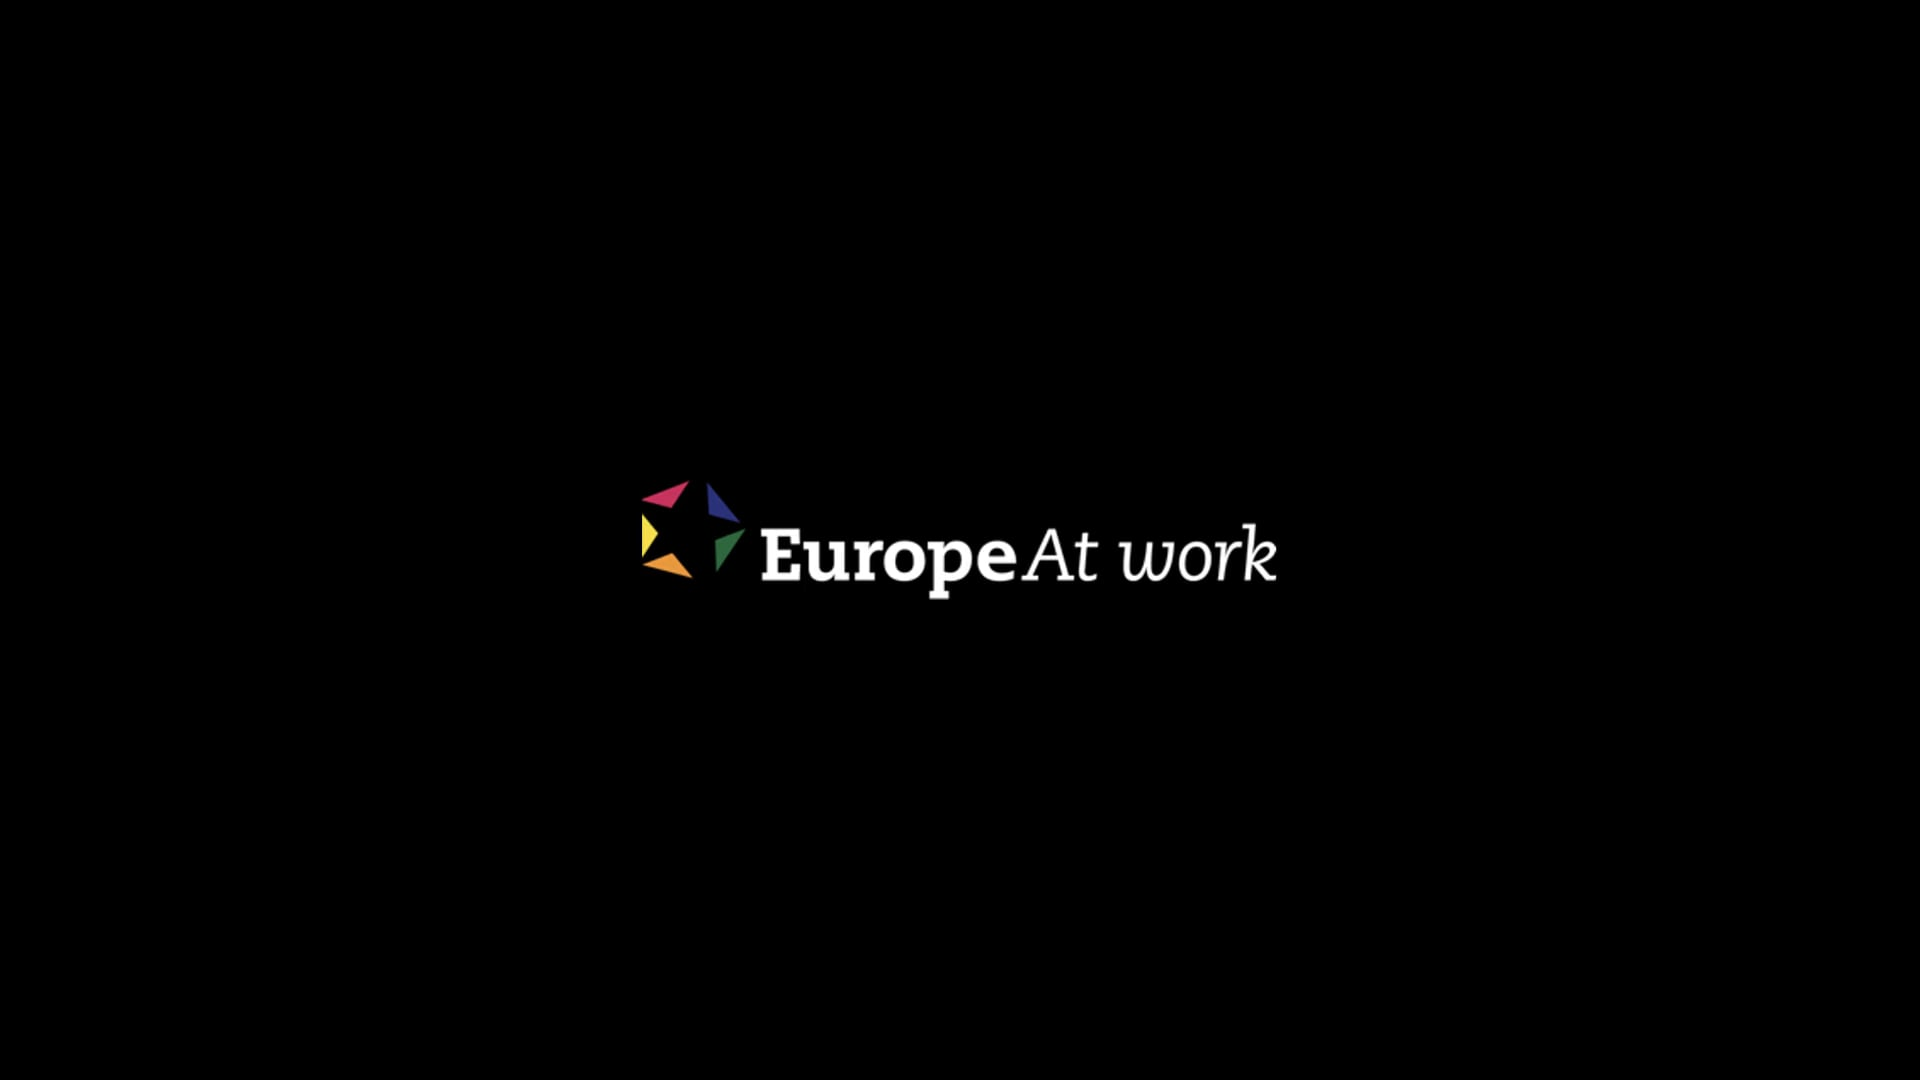 The game Europe at Work